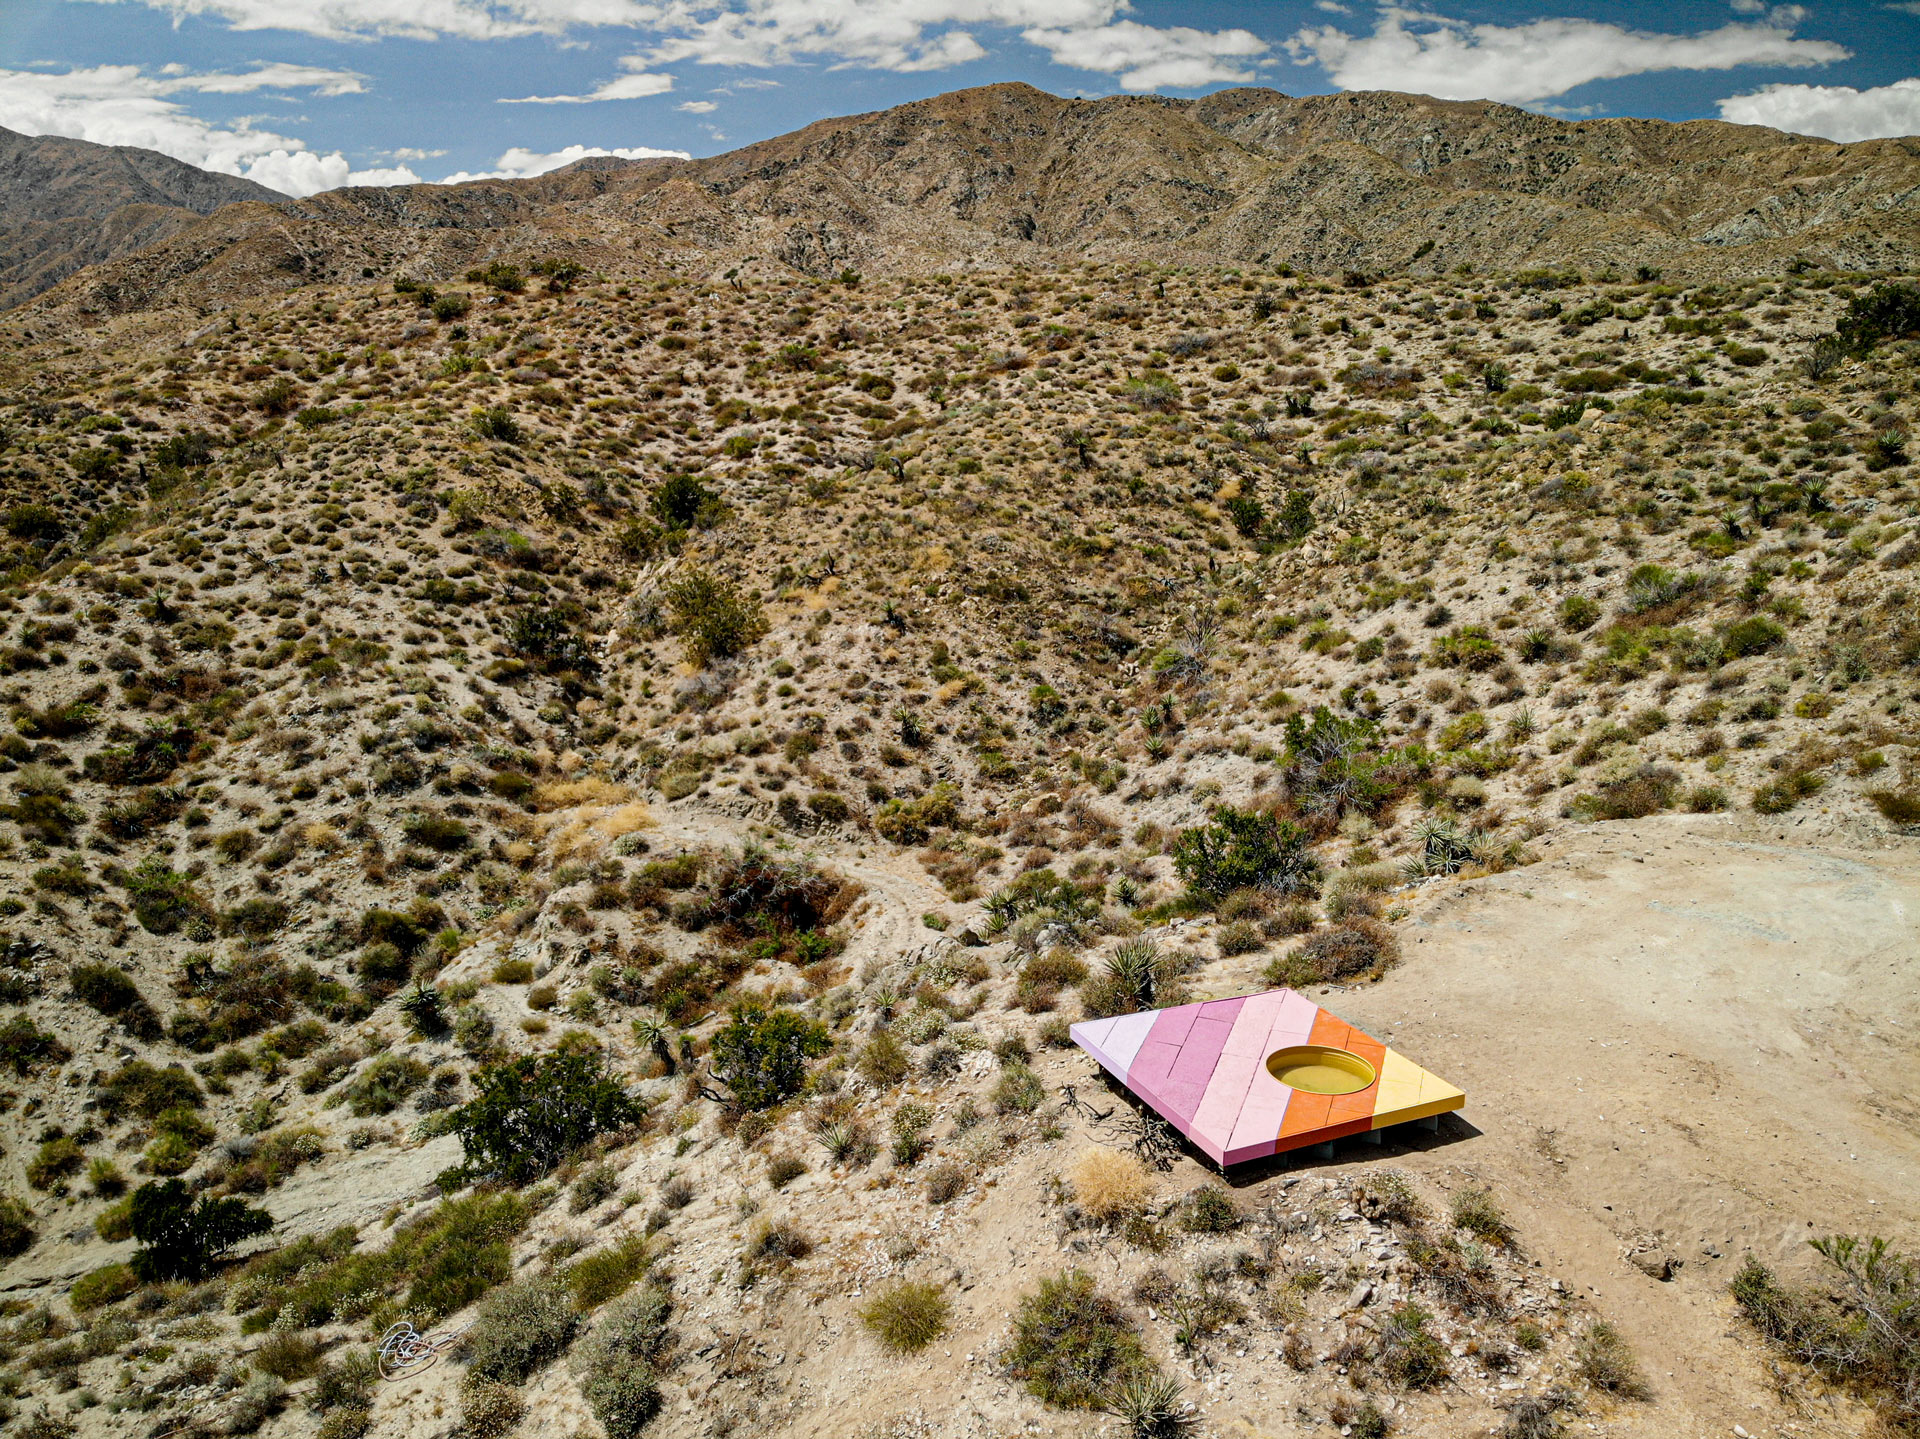 A vast valley with a desert, and a colorful board installation